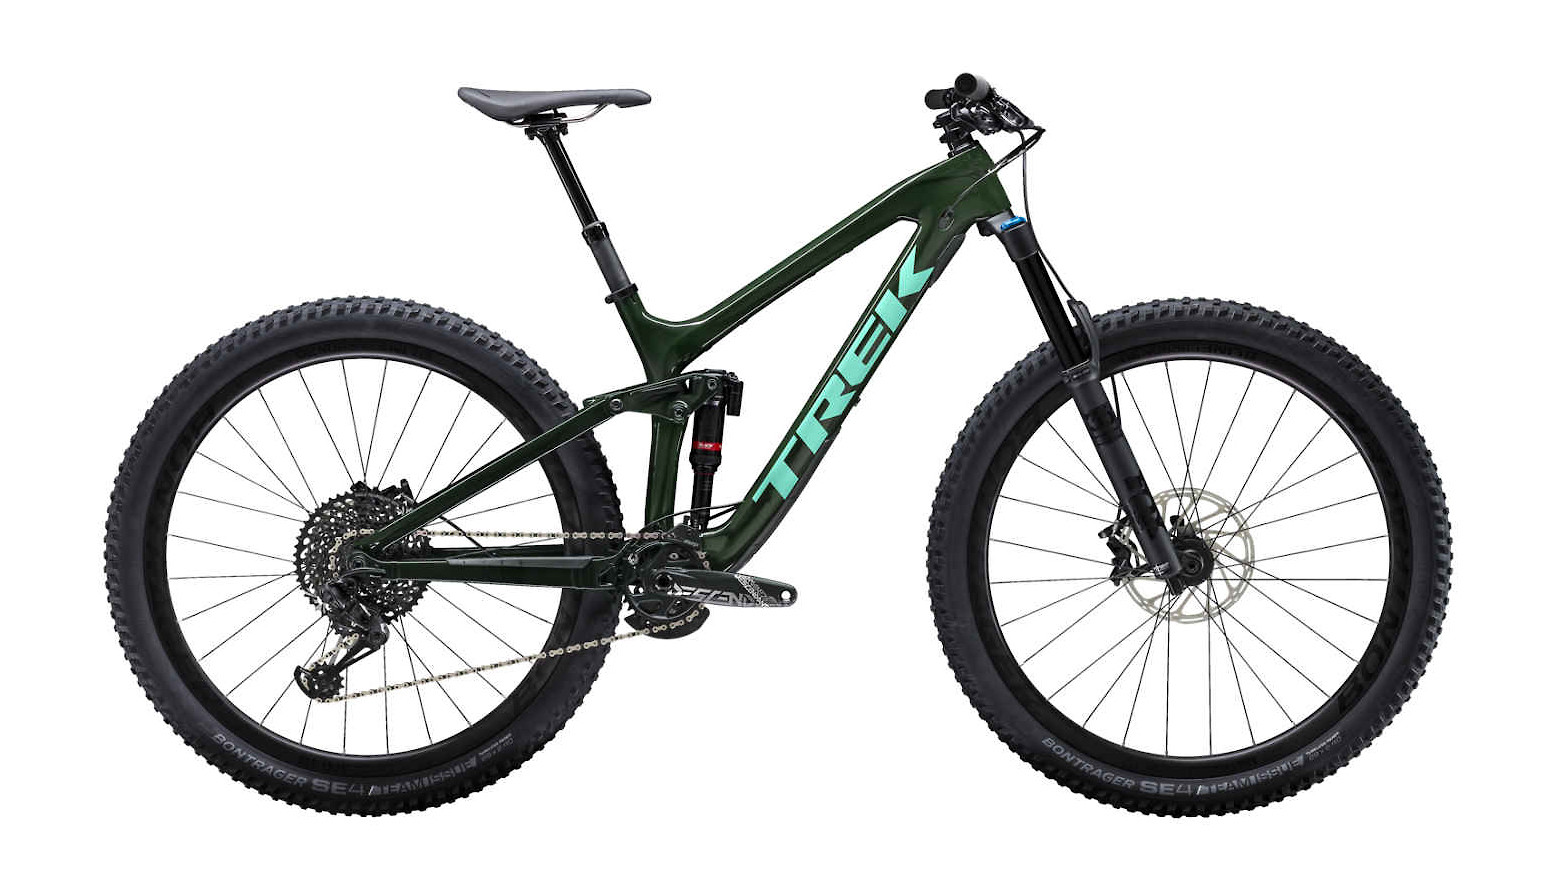 2019 Trek Slash 9.8 (sizes: M AND L, color: Green/Miami)  was 5899.99/ NOW 5309.99